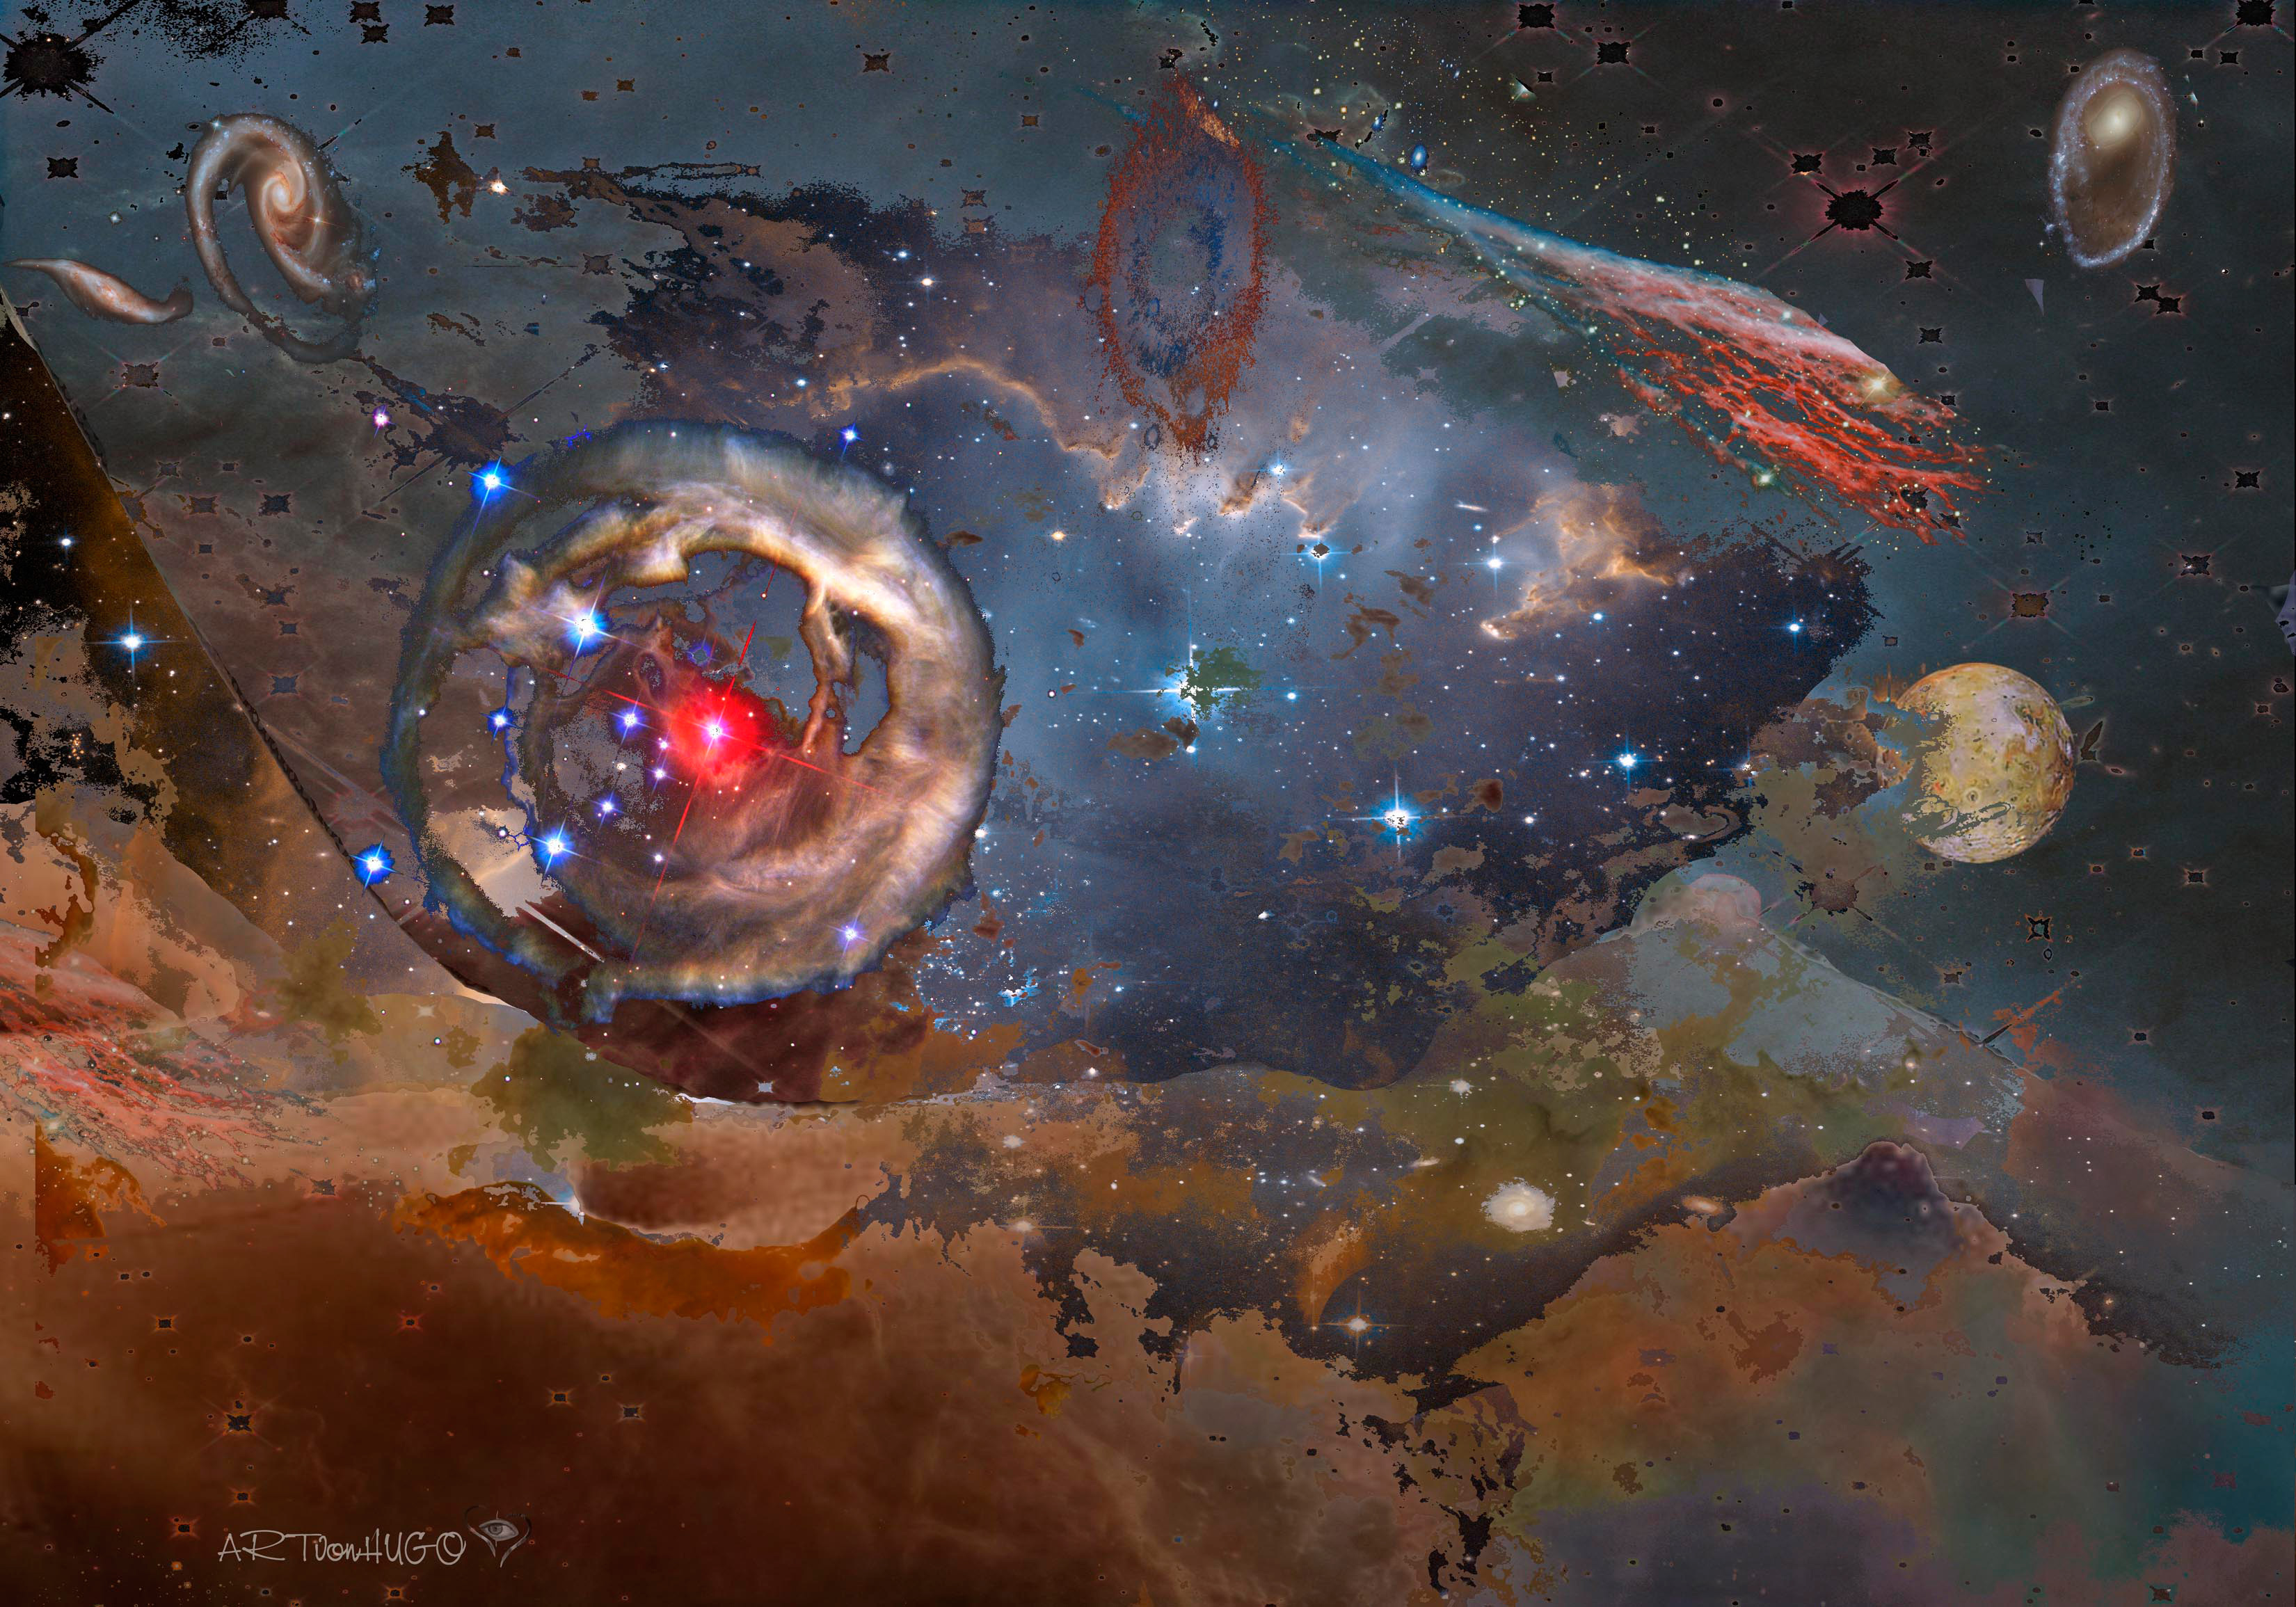 Abstracted Art Works 05 Esa Hubble